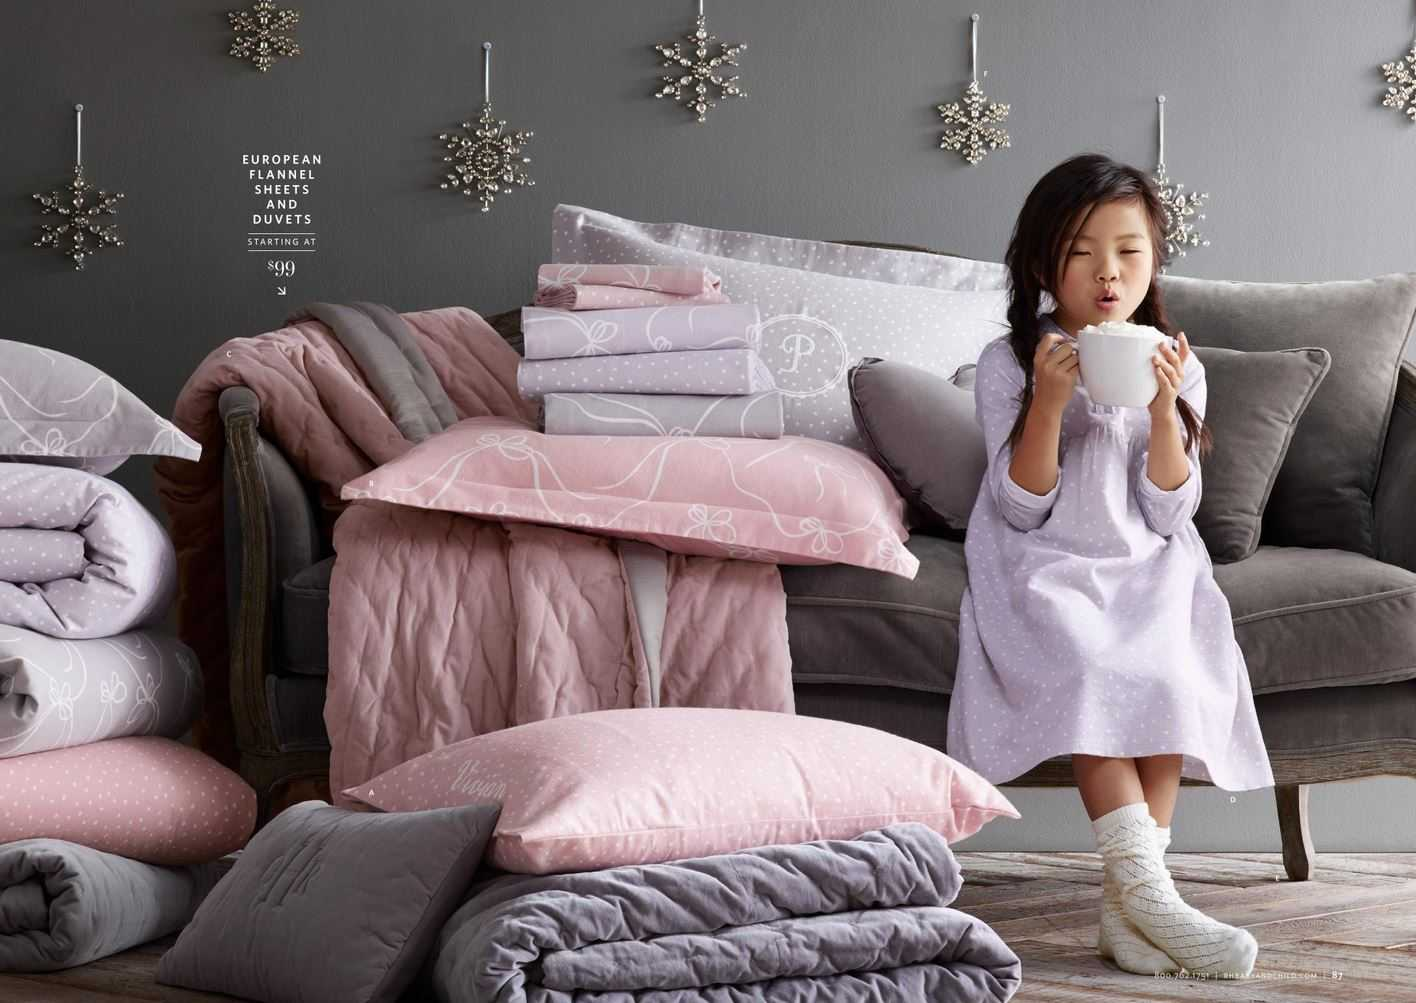 rh-baby-child-holiday14-catalog-35